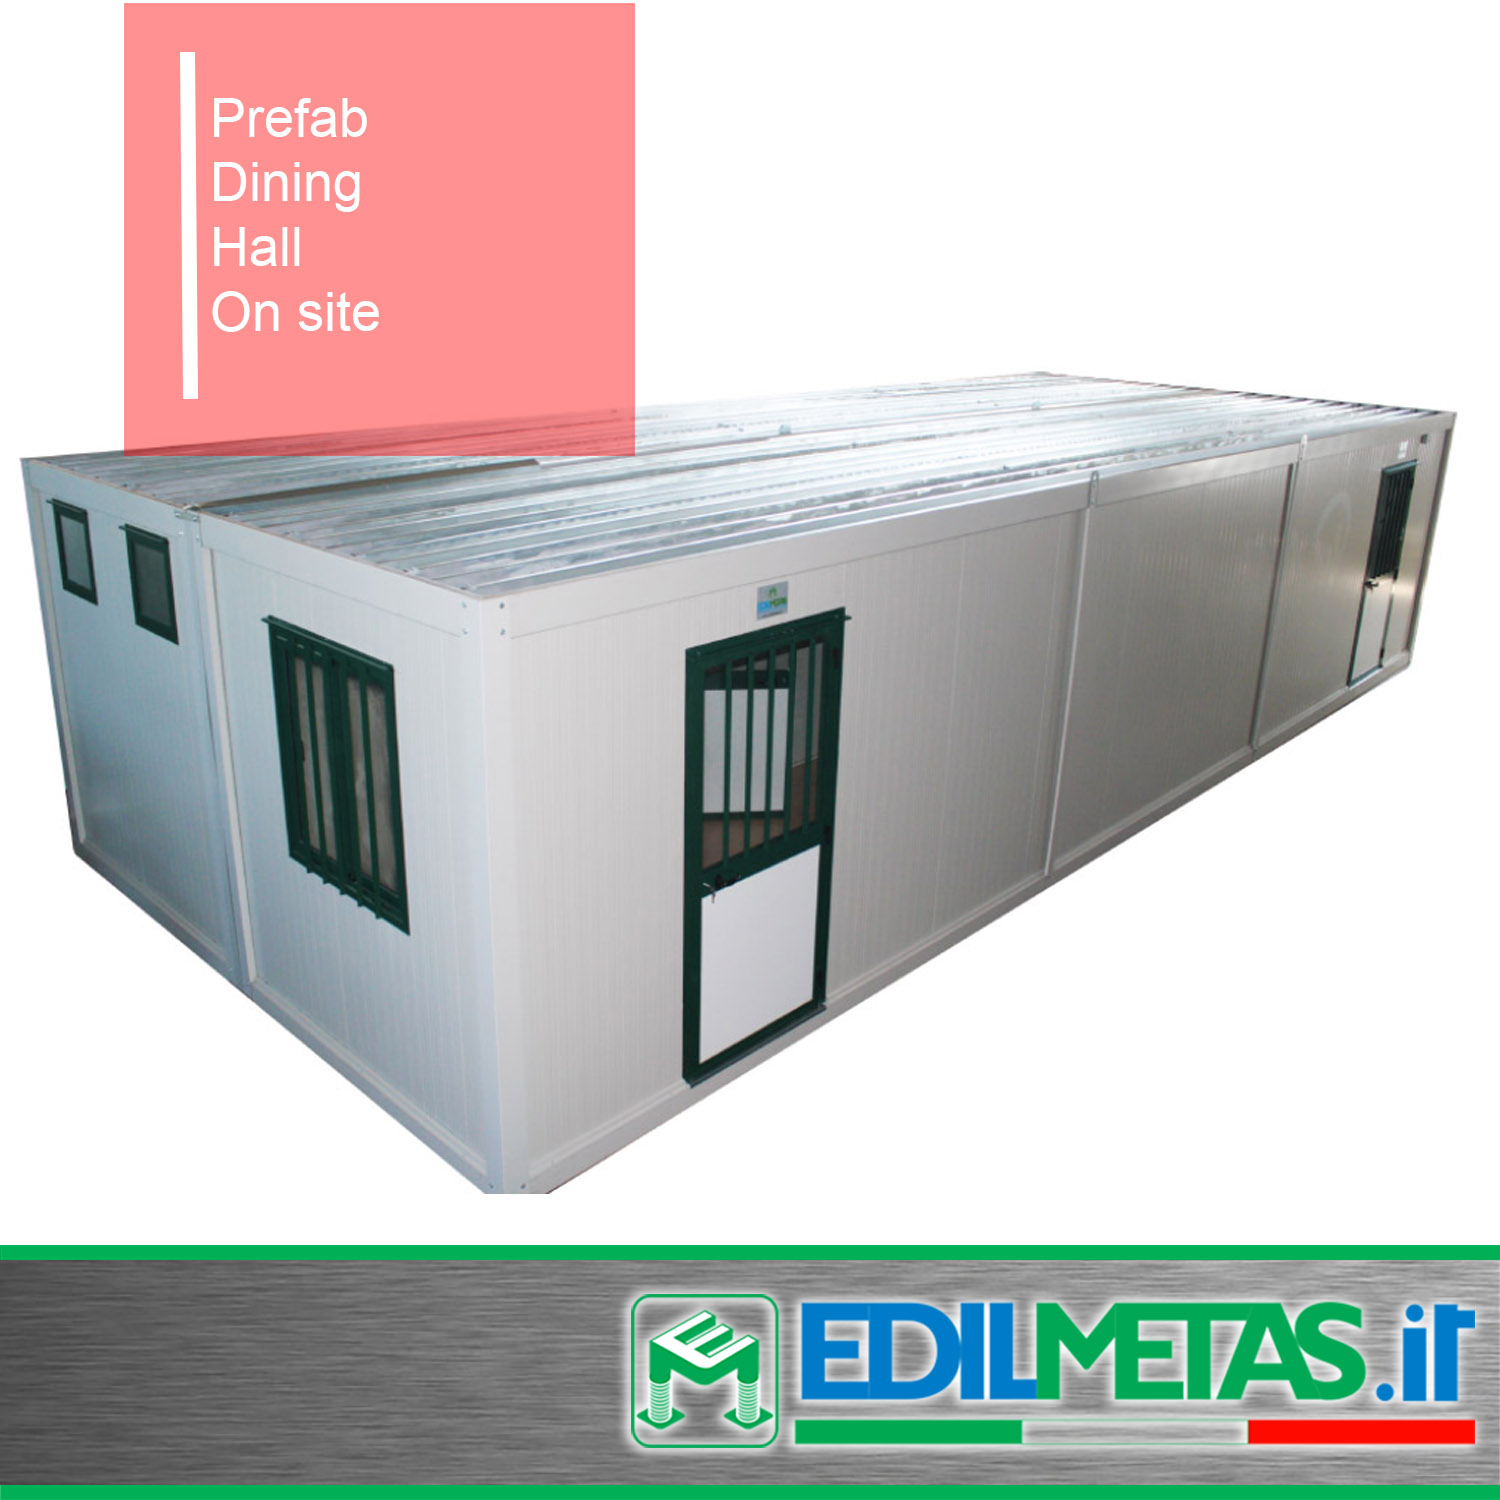 prefabricated dining hall